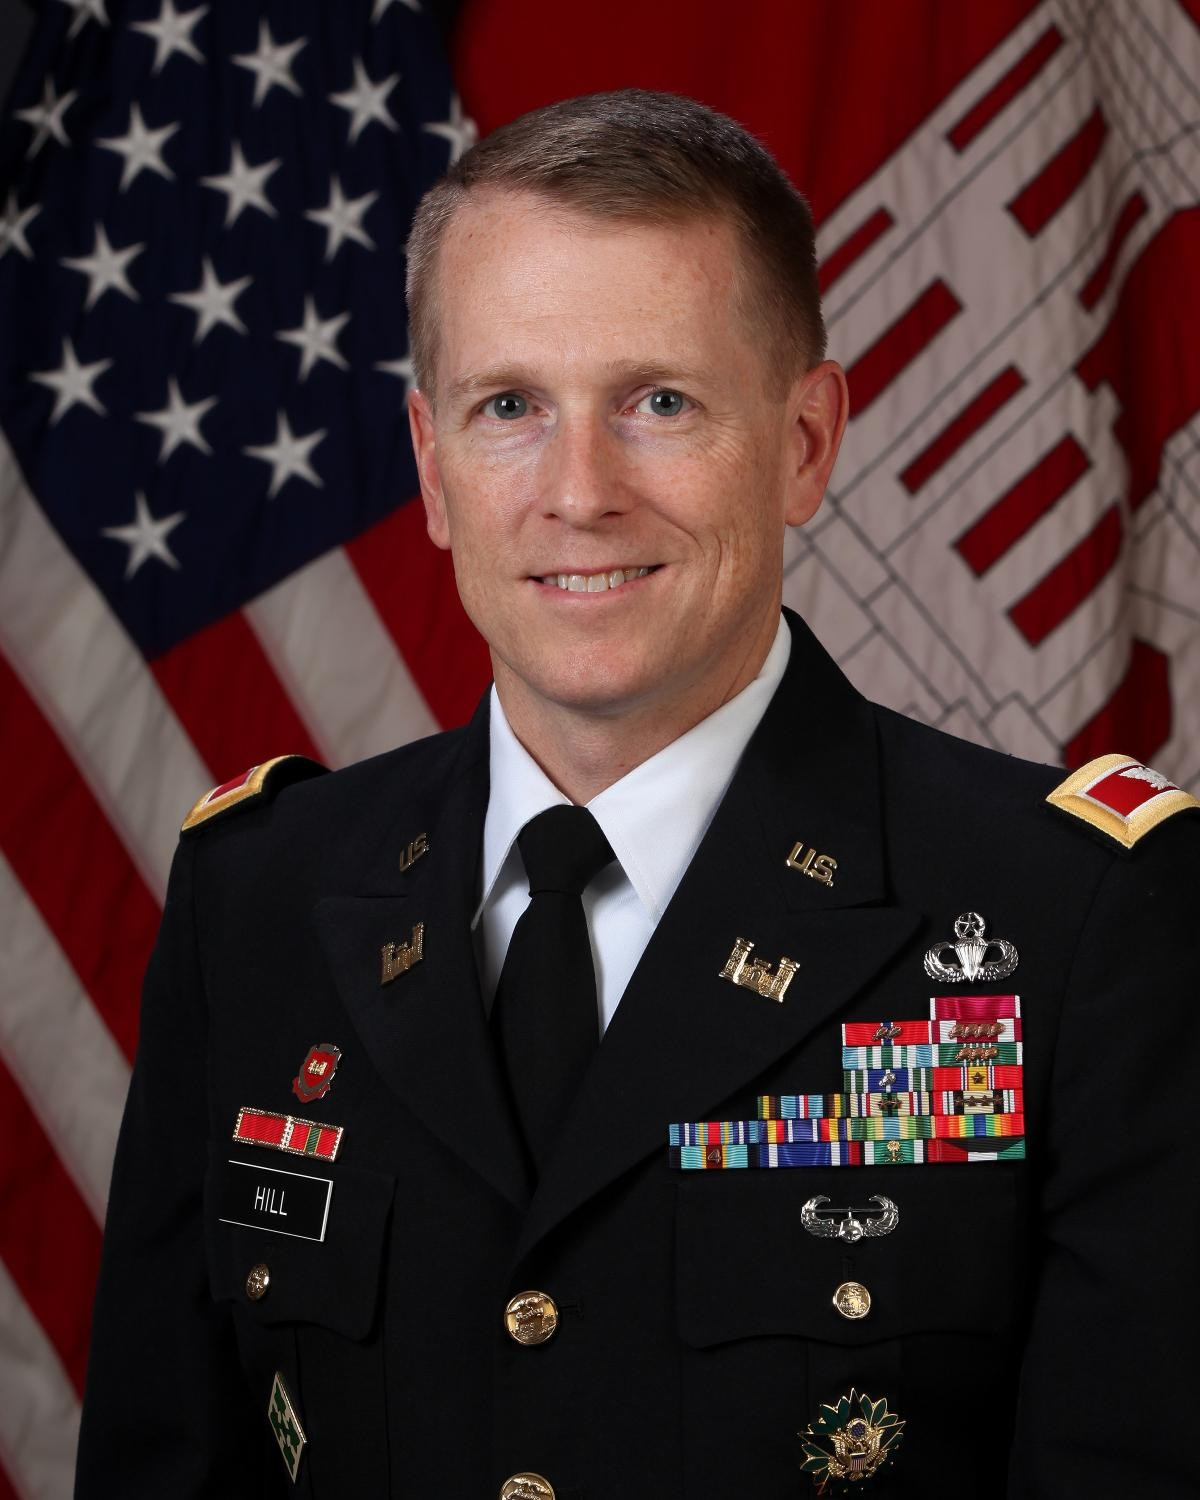 Hill to take command of Corps' Southwestern Division ...